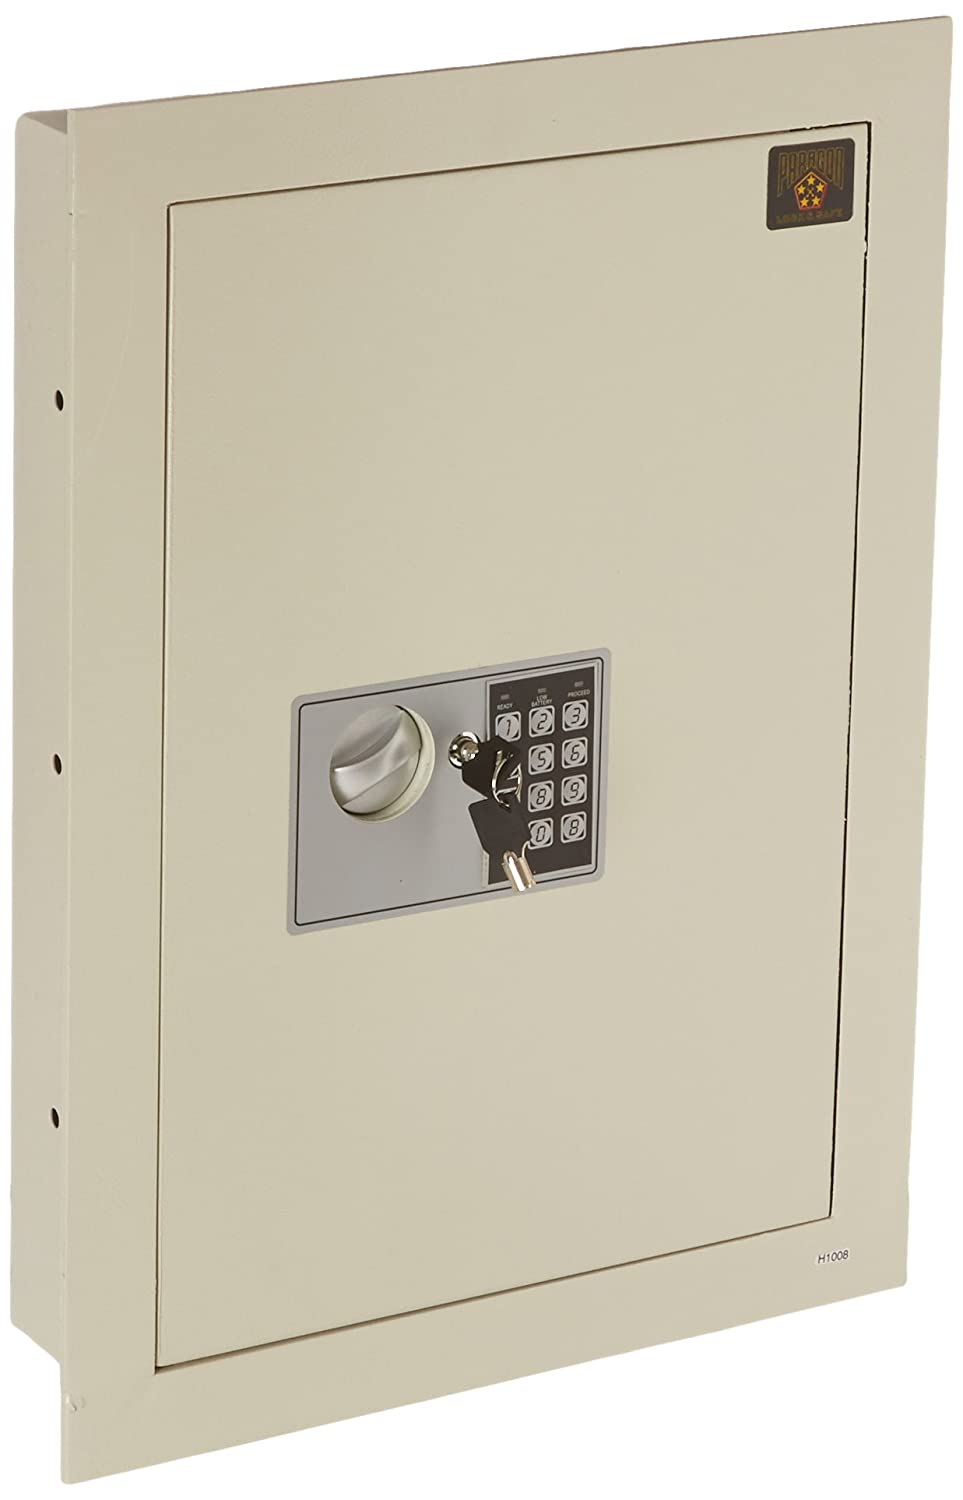 Paragon 7700 Flat Electronic Hidden Wall Safe For Large